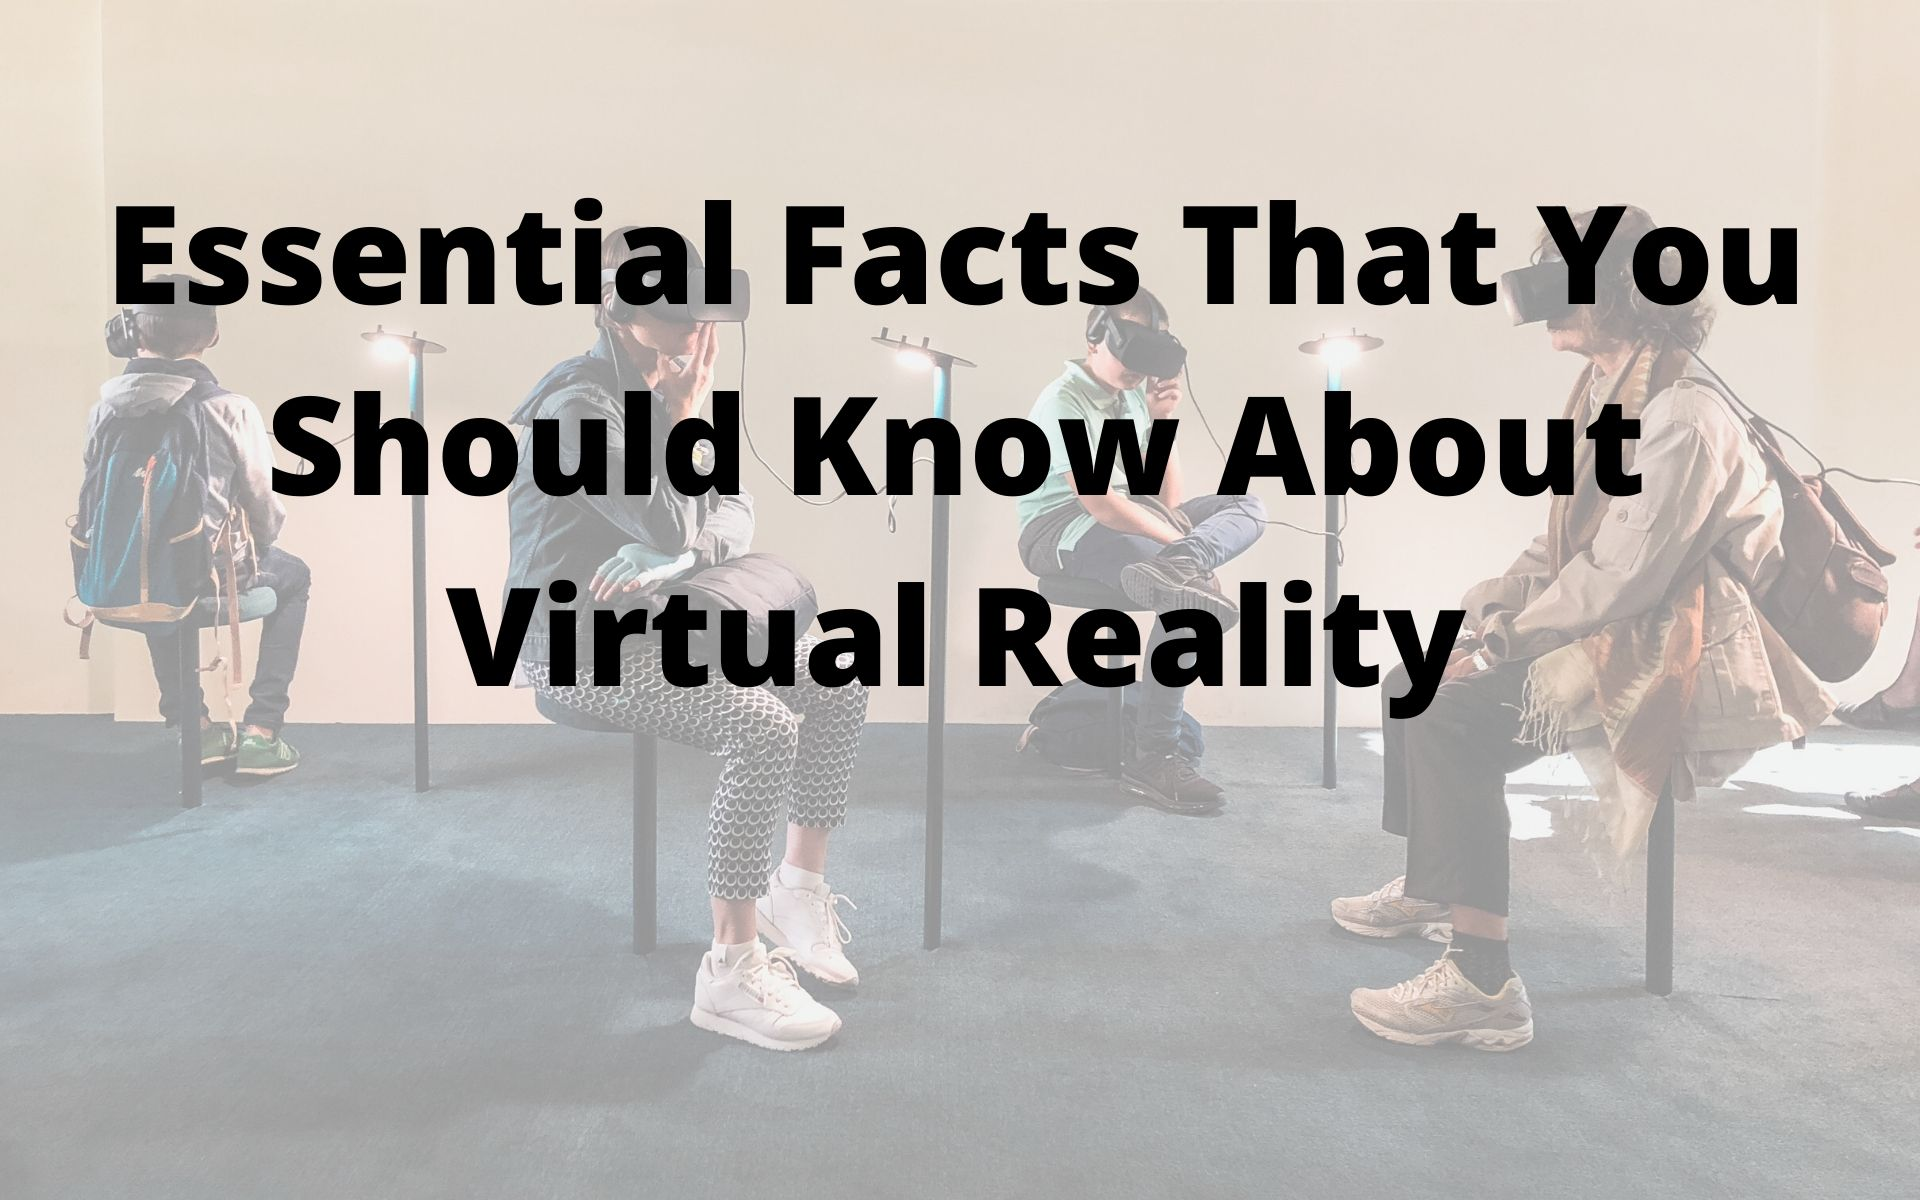 Essential Facts That You Should Know About Virtual Reality